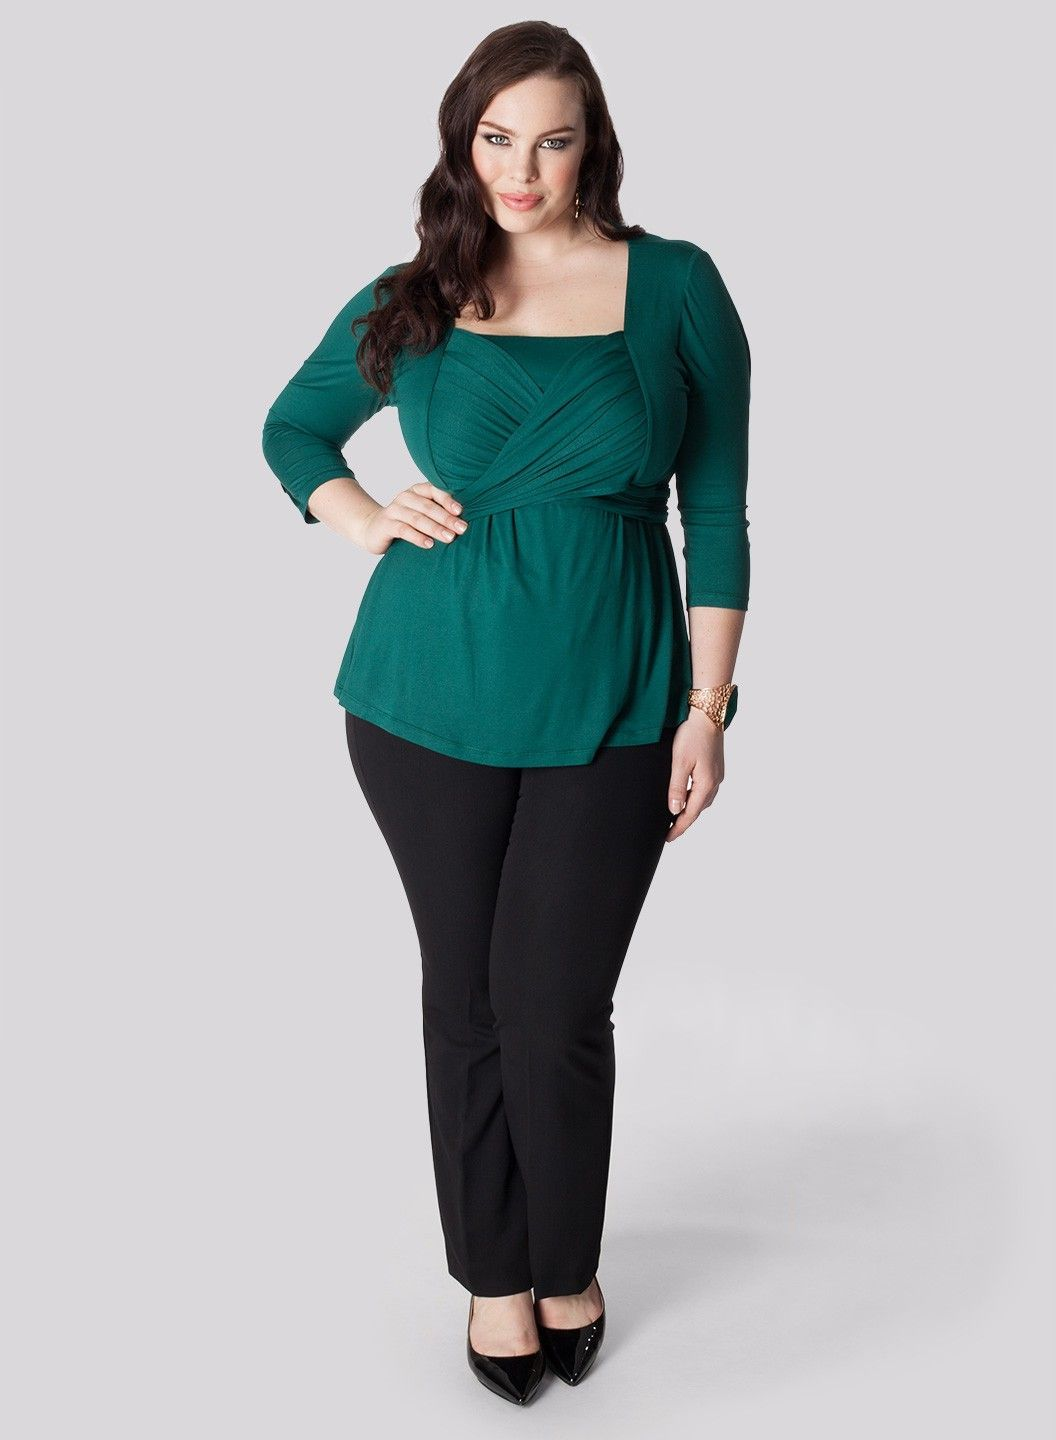 womens plus size petite business casual clothing  women  plus size casual dresses plus size